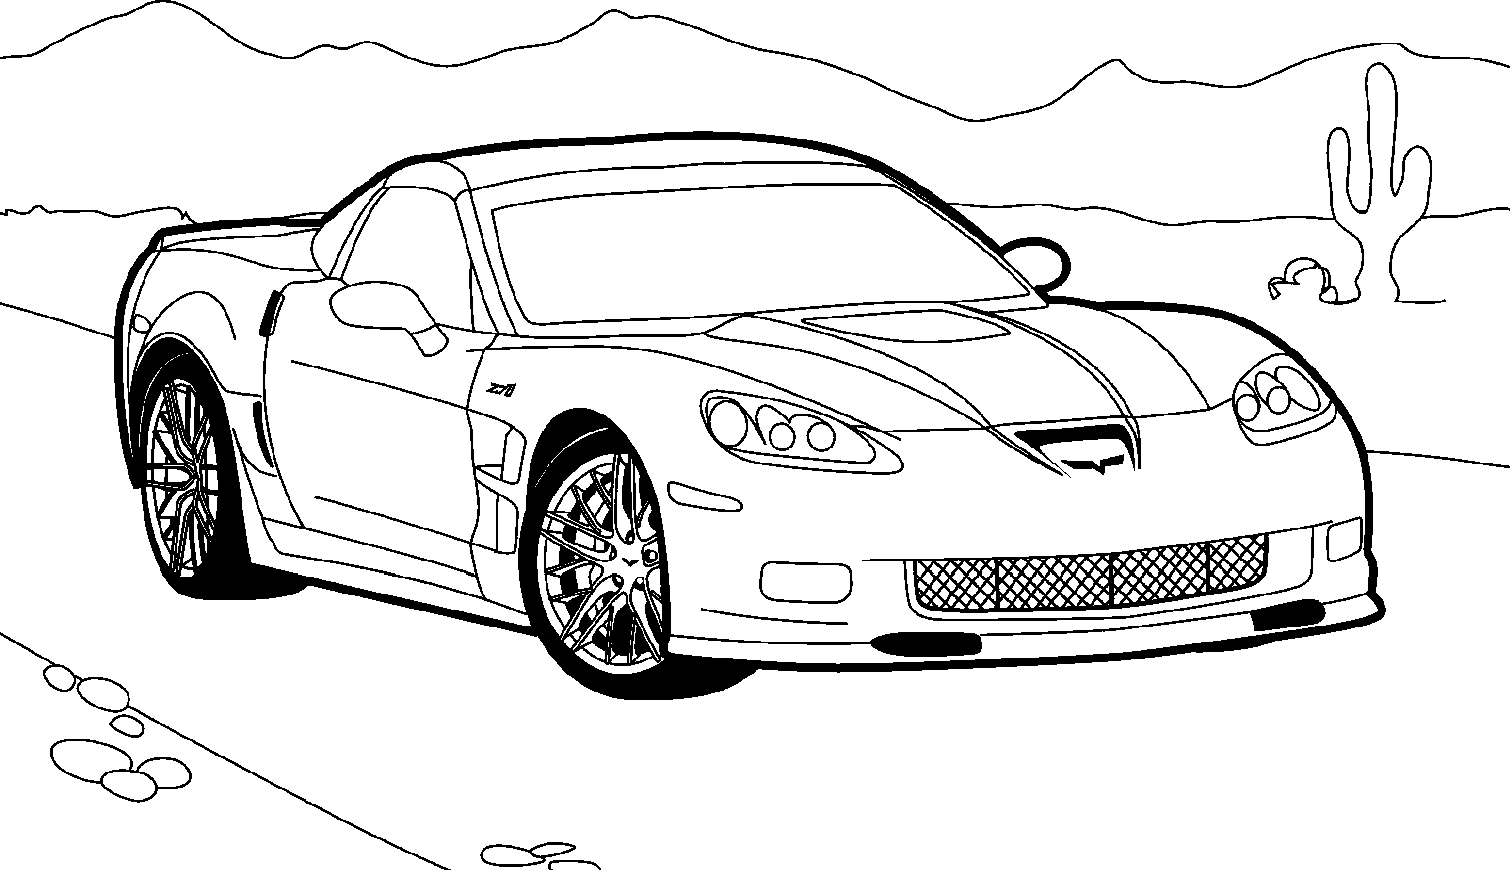 hight resolution of race car black and white race car clipart black and white